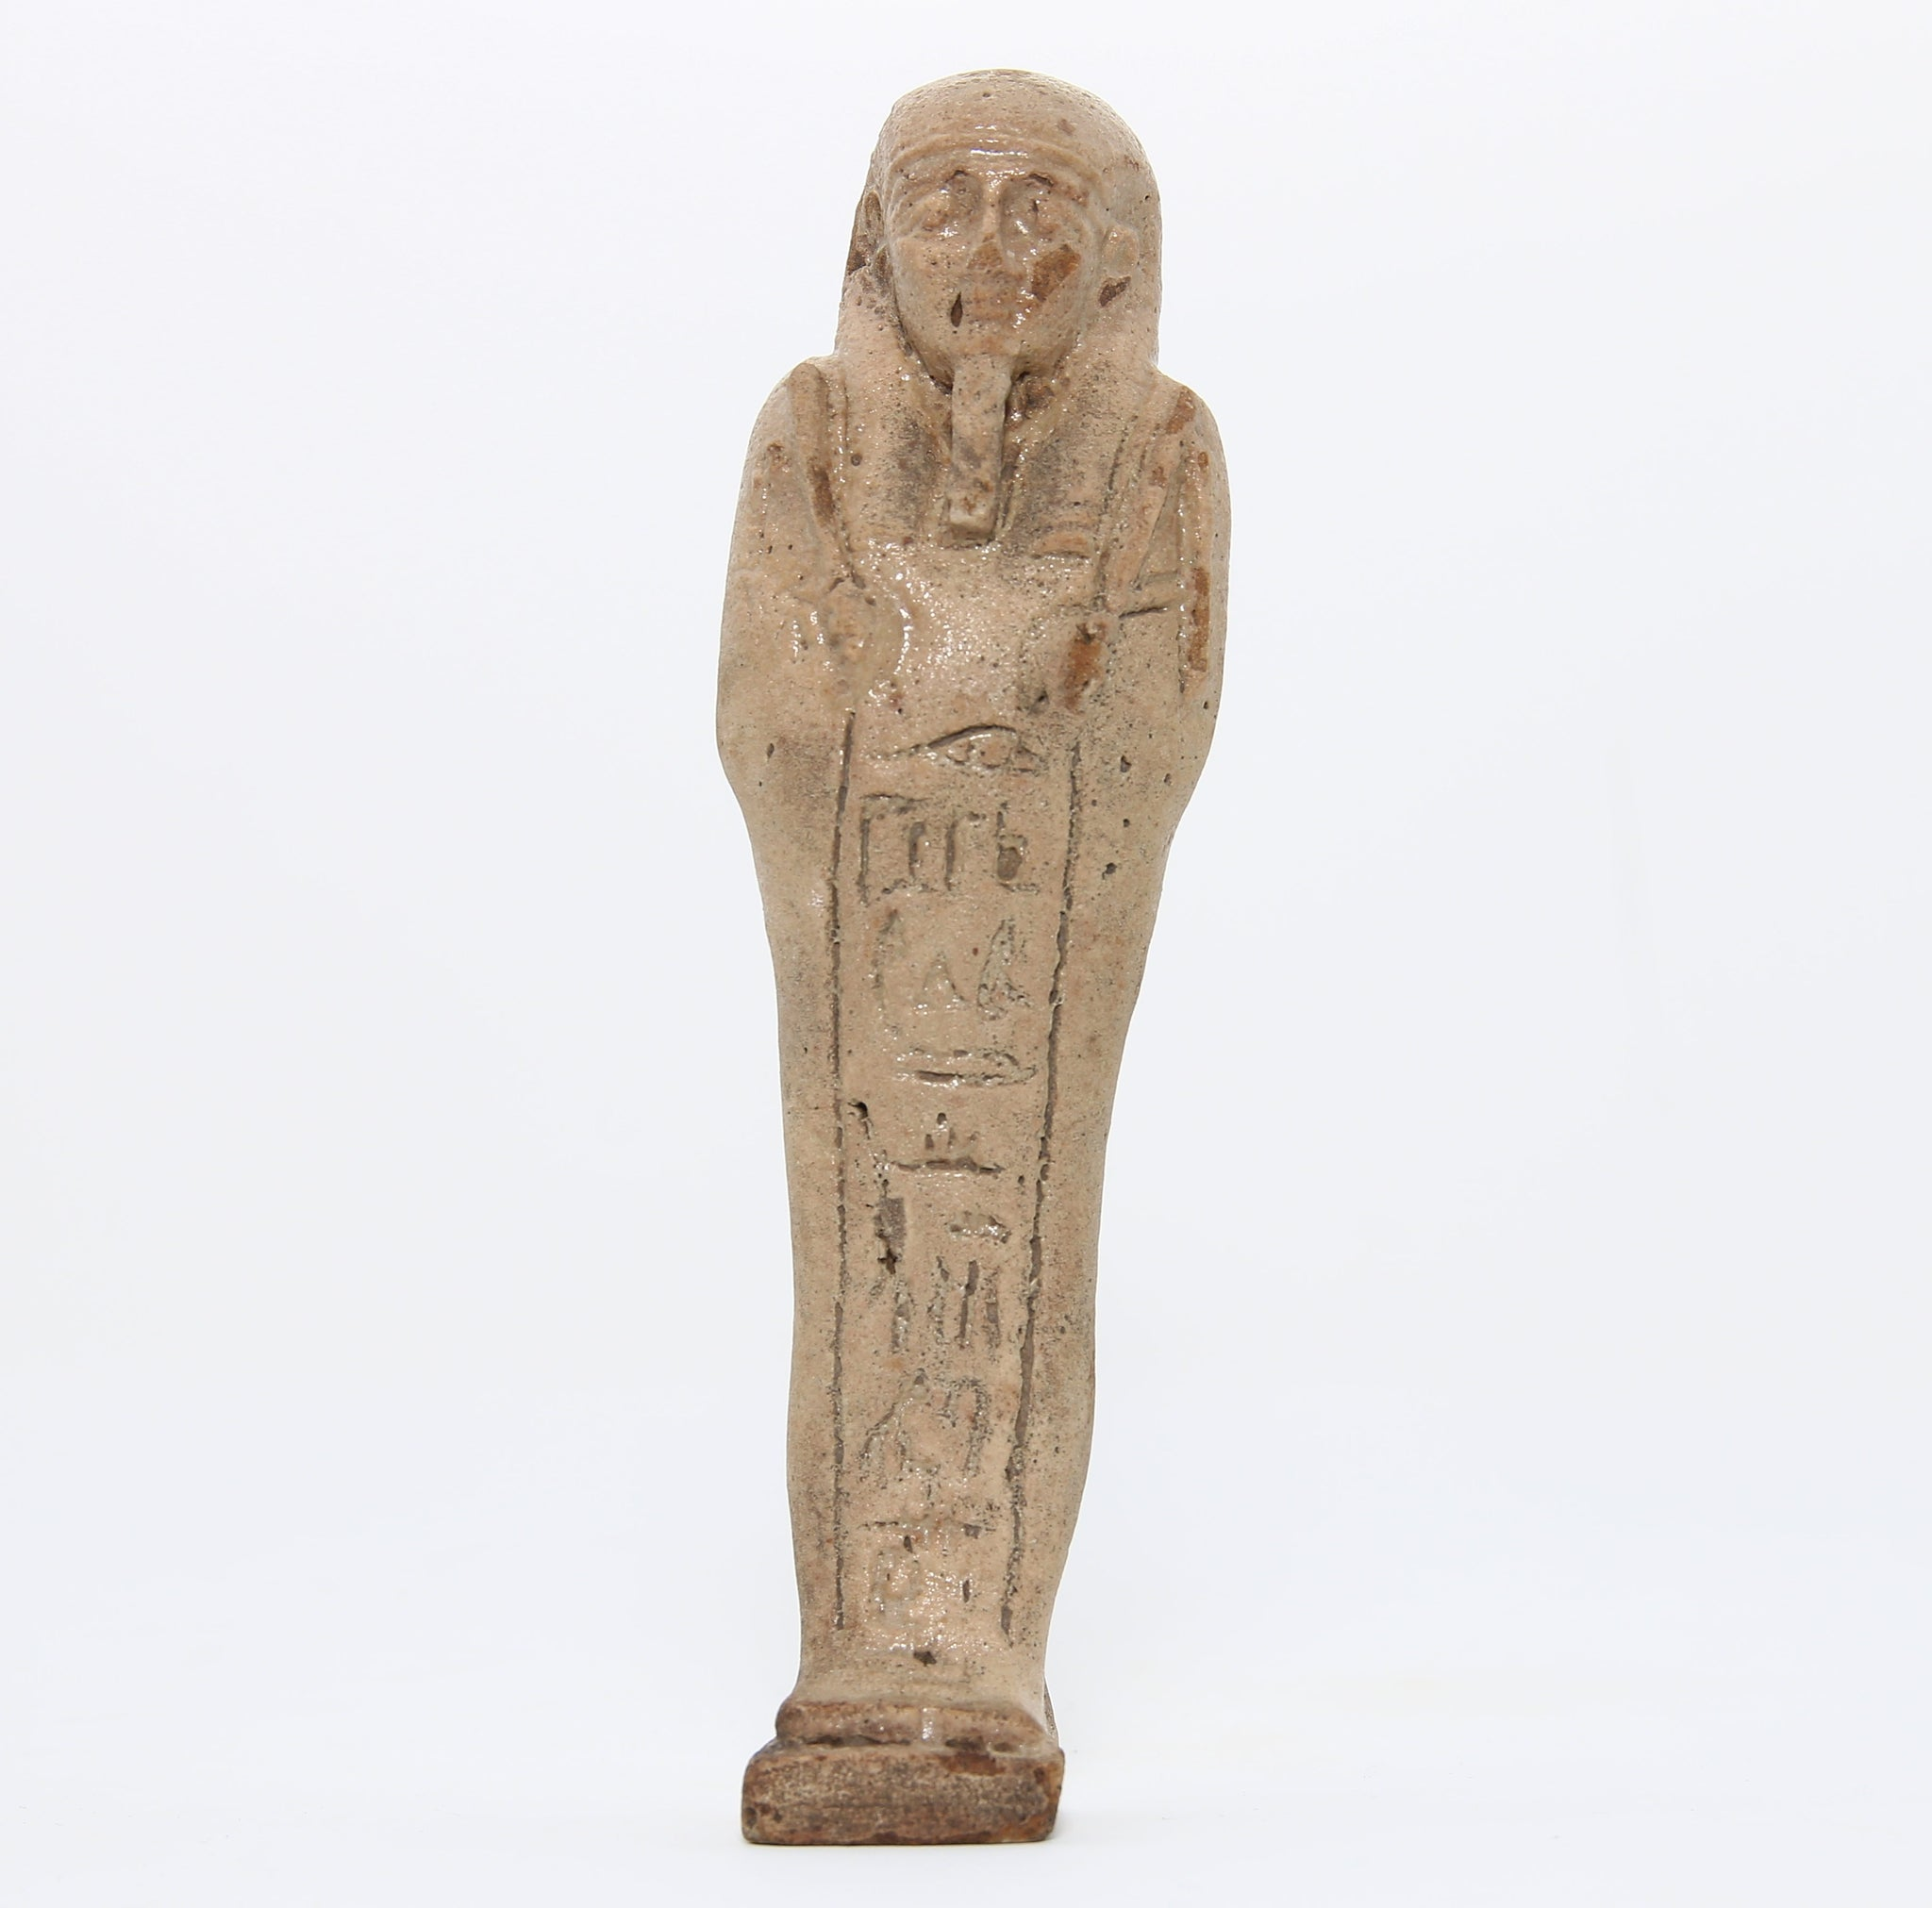 A faience shabti figure with incised inscription | Egypt, Late Dynastic Period c. 380-343 BC